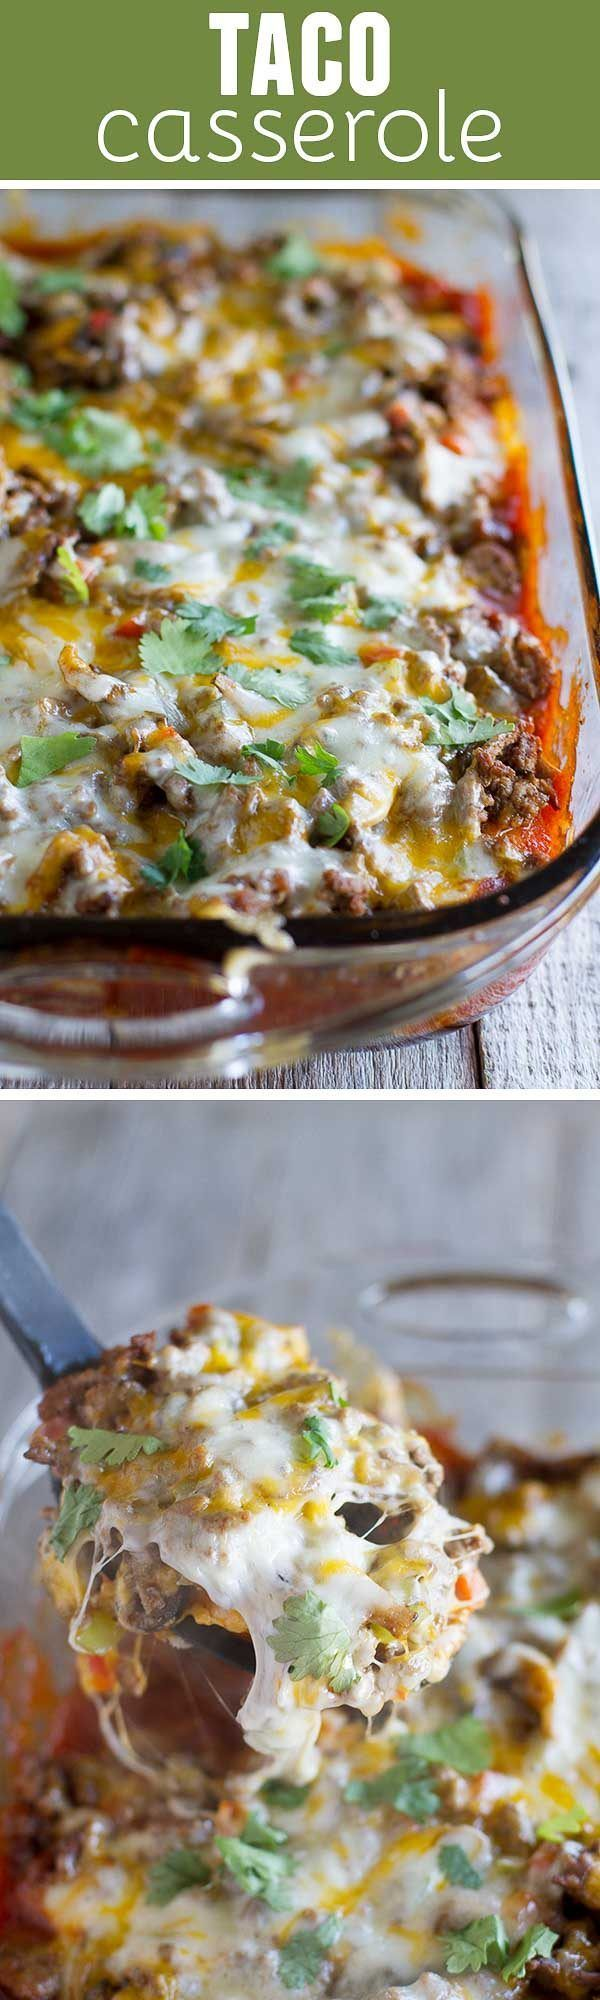 Biscuits are coated in taco sauce then topped with spiced ground beef and lots of cheese in this family friendly Taco Casserole.